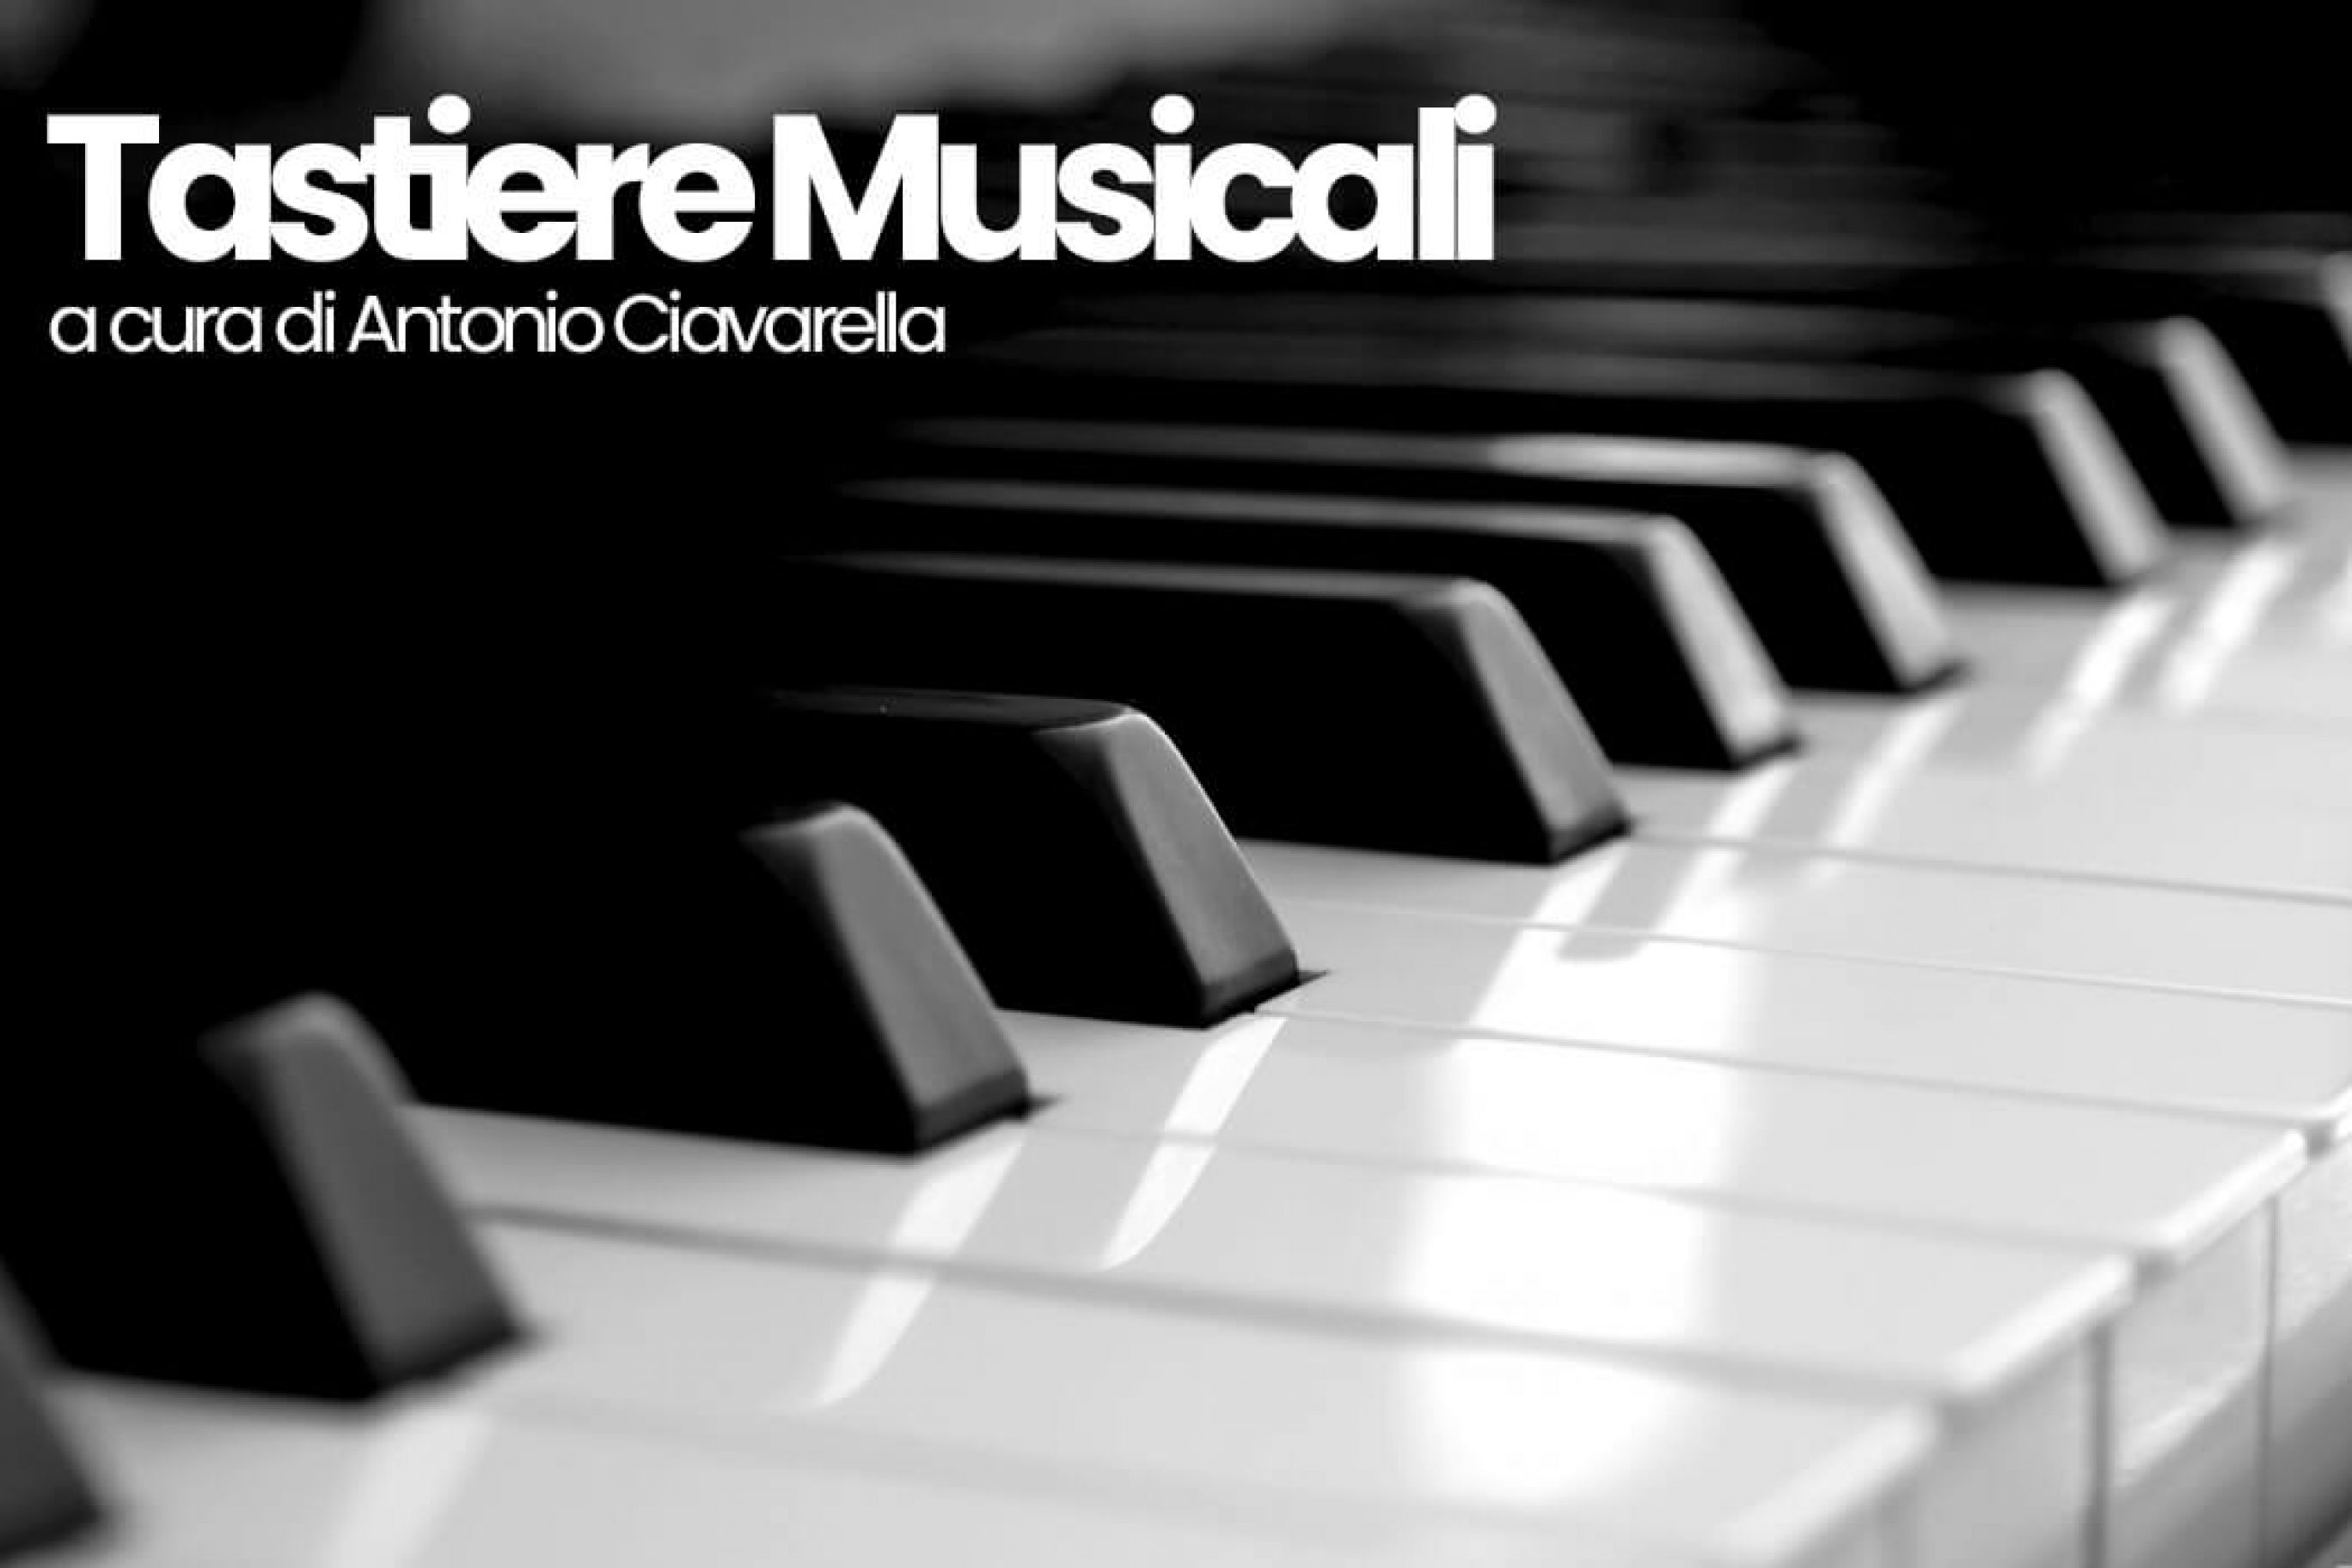 Tastiere Musicali: Overview